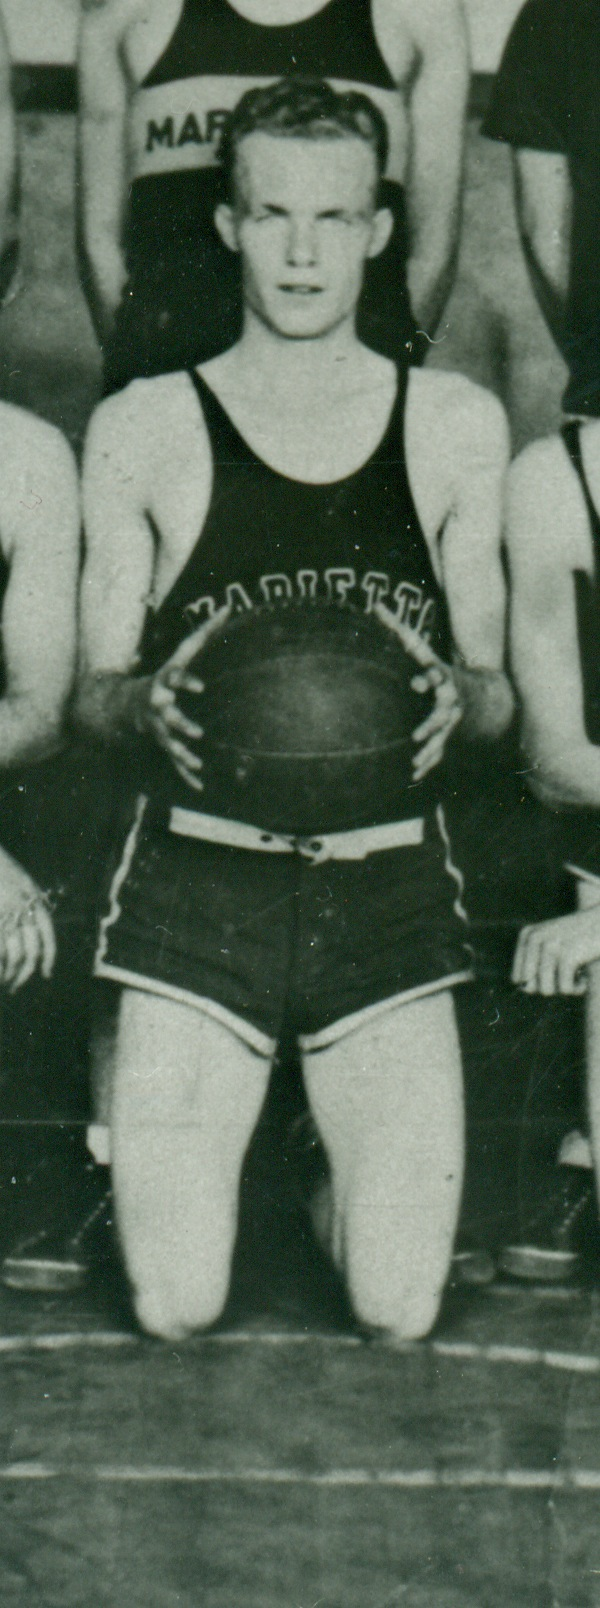 3. Arthur Bacon, Captain, Marietta High School Basketball Team, 1939